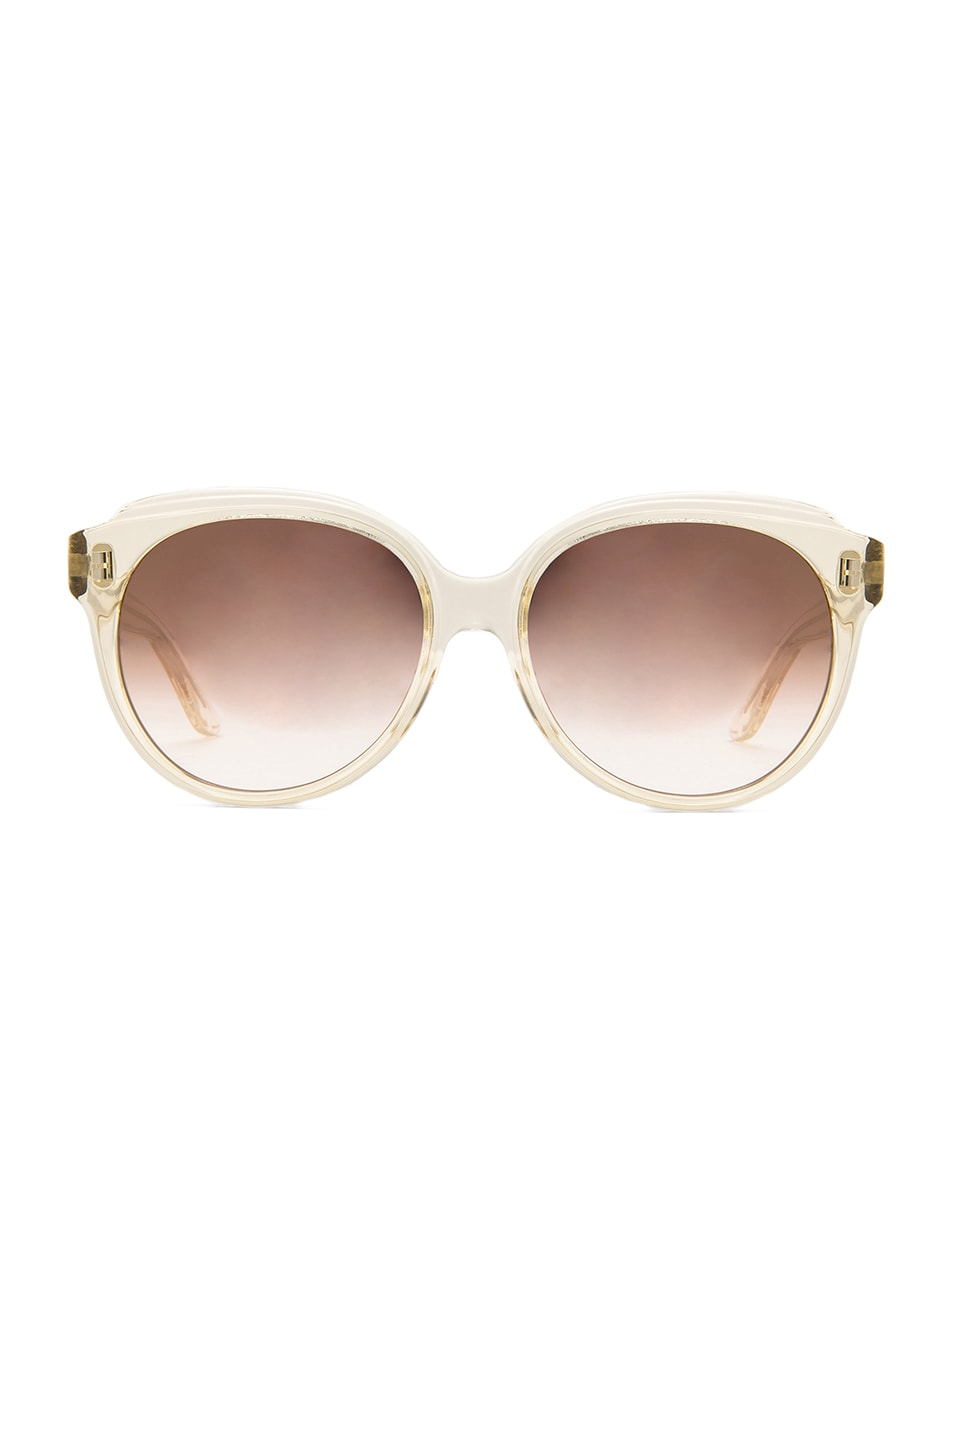 Image 1 of Barton Perreira Marvalette Sunglasses in Champagne